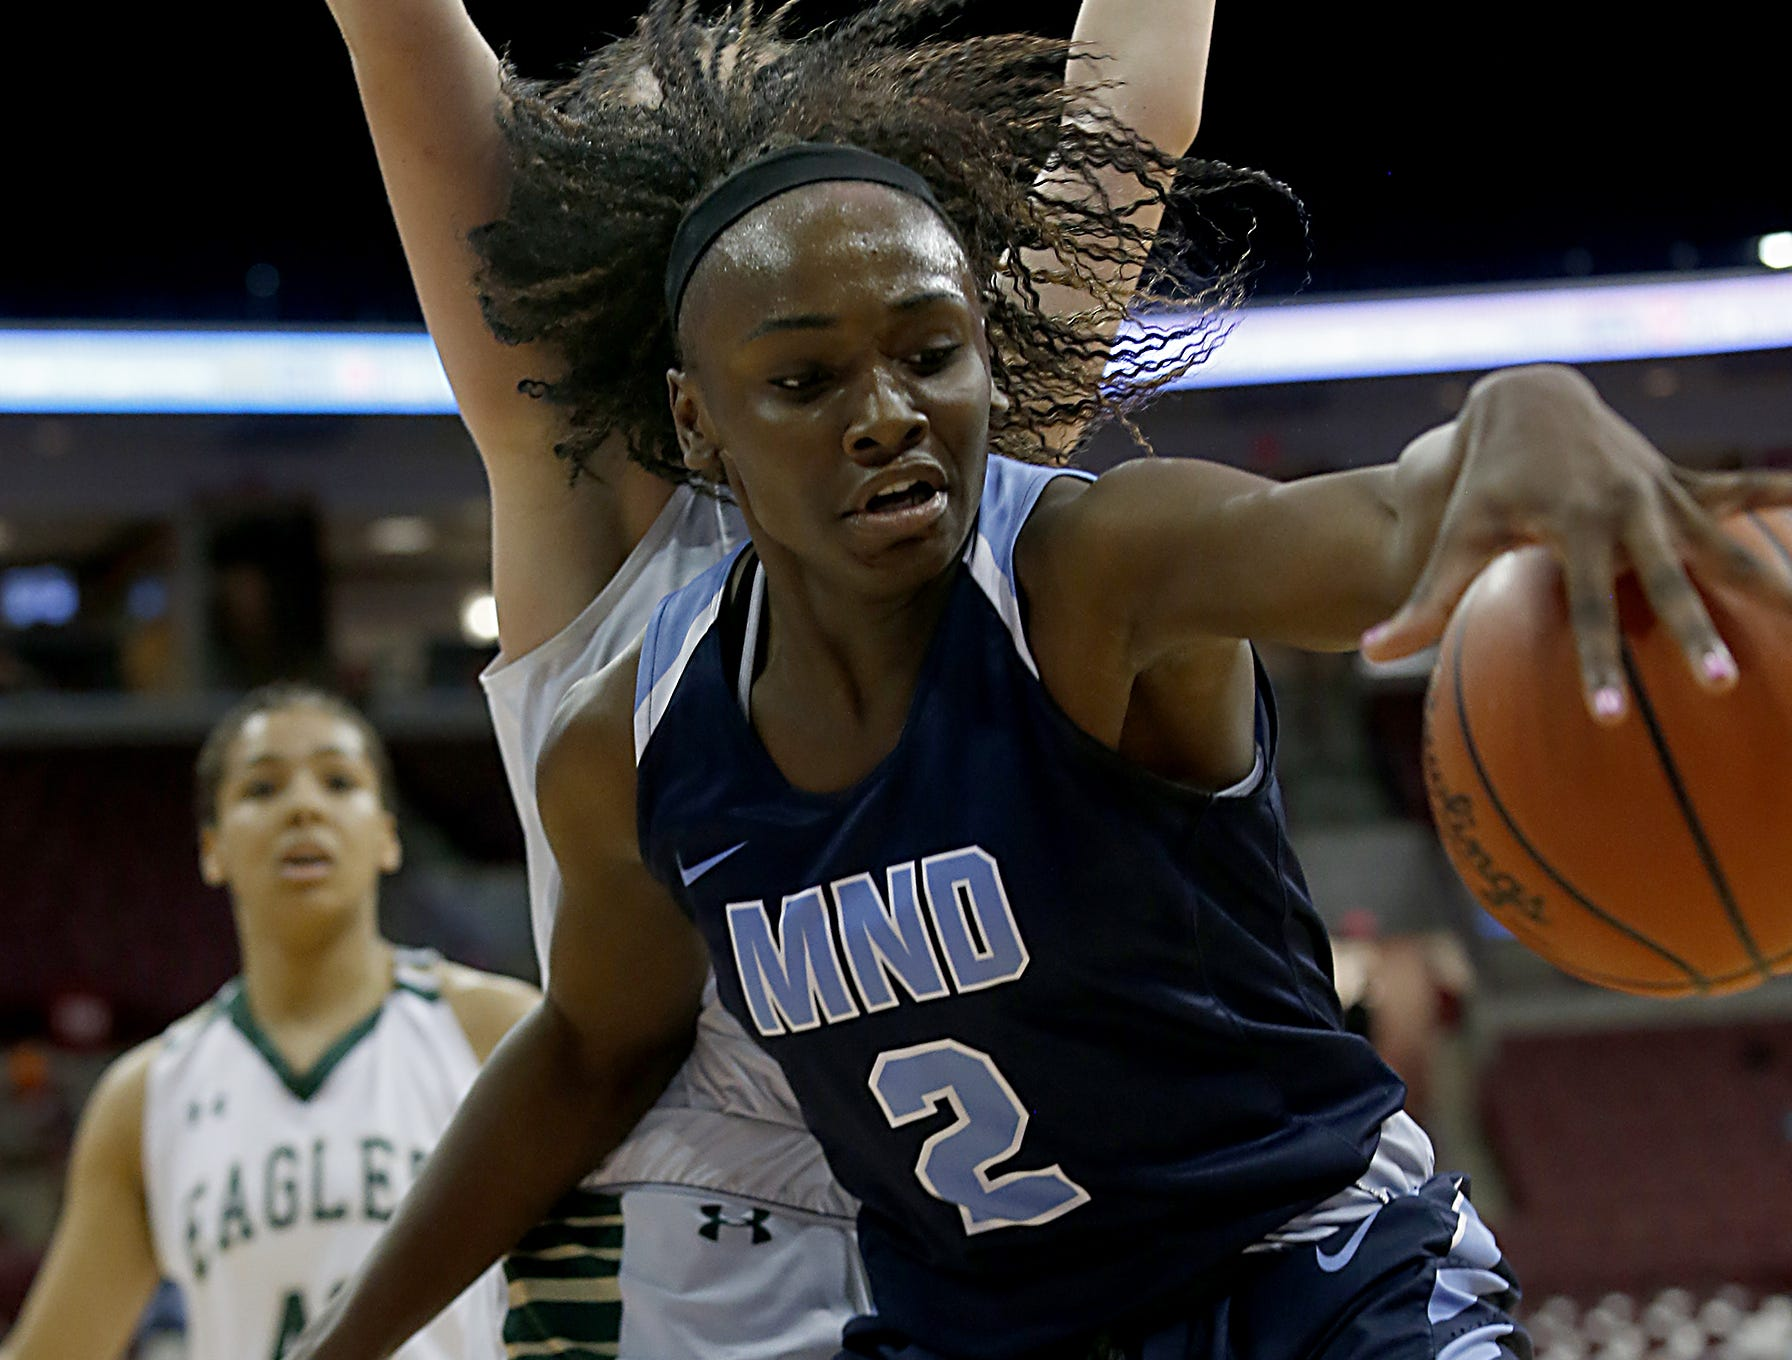 Mount Notre Dame guard K.K. Bransford keeps the ball in play against GlenOak during their Division I semifinal game in the 44th Annual State Girls Basketball Tournament at the Schottenstein Center in Columbus Friday, March 15, 2019.